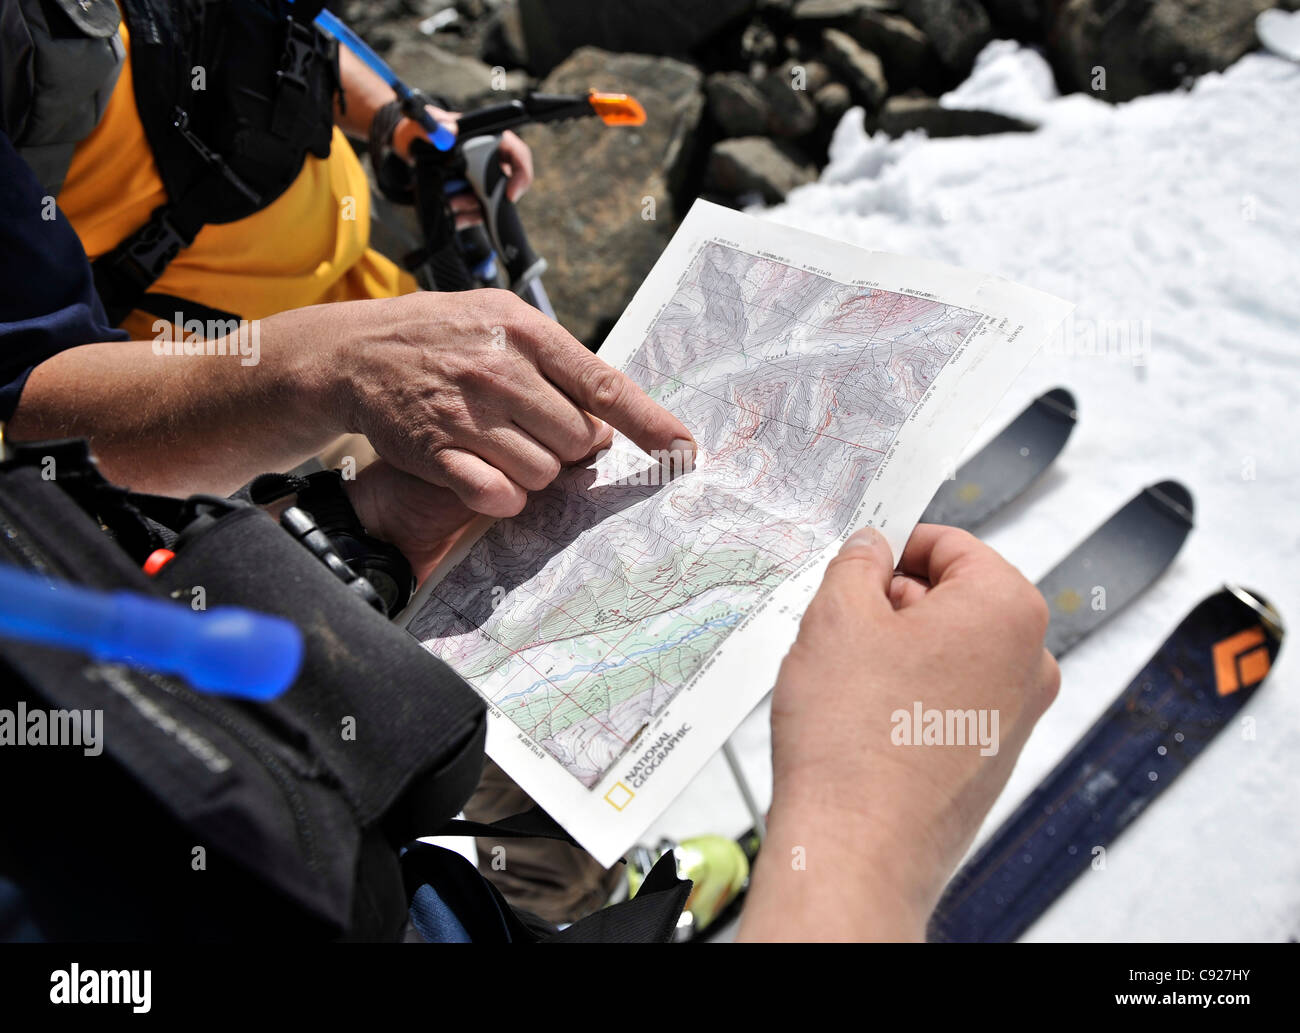 Two backcountry skiers review a map to navigate up Water Fall Creek valley, North Fork Eagle River, Alaska - Stock Image